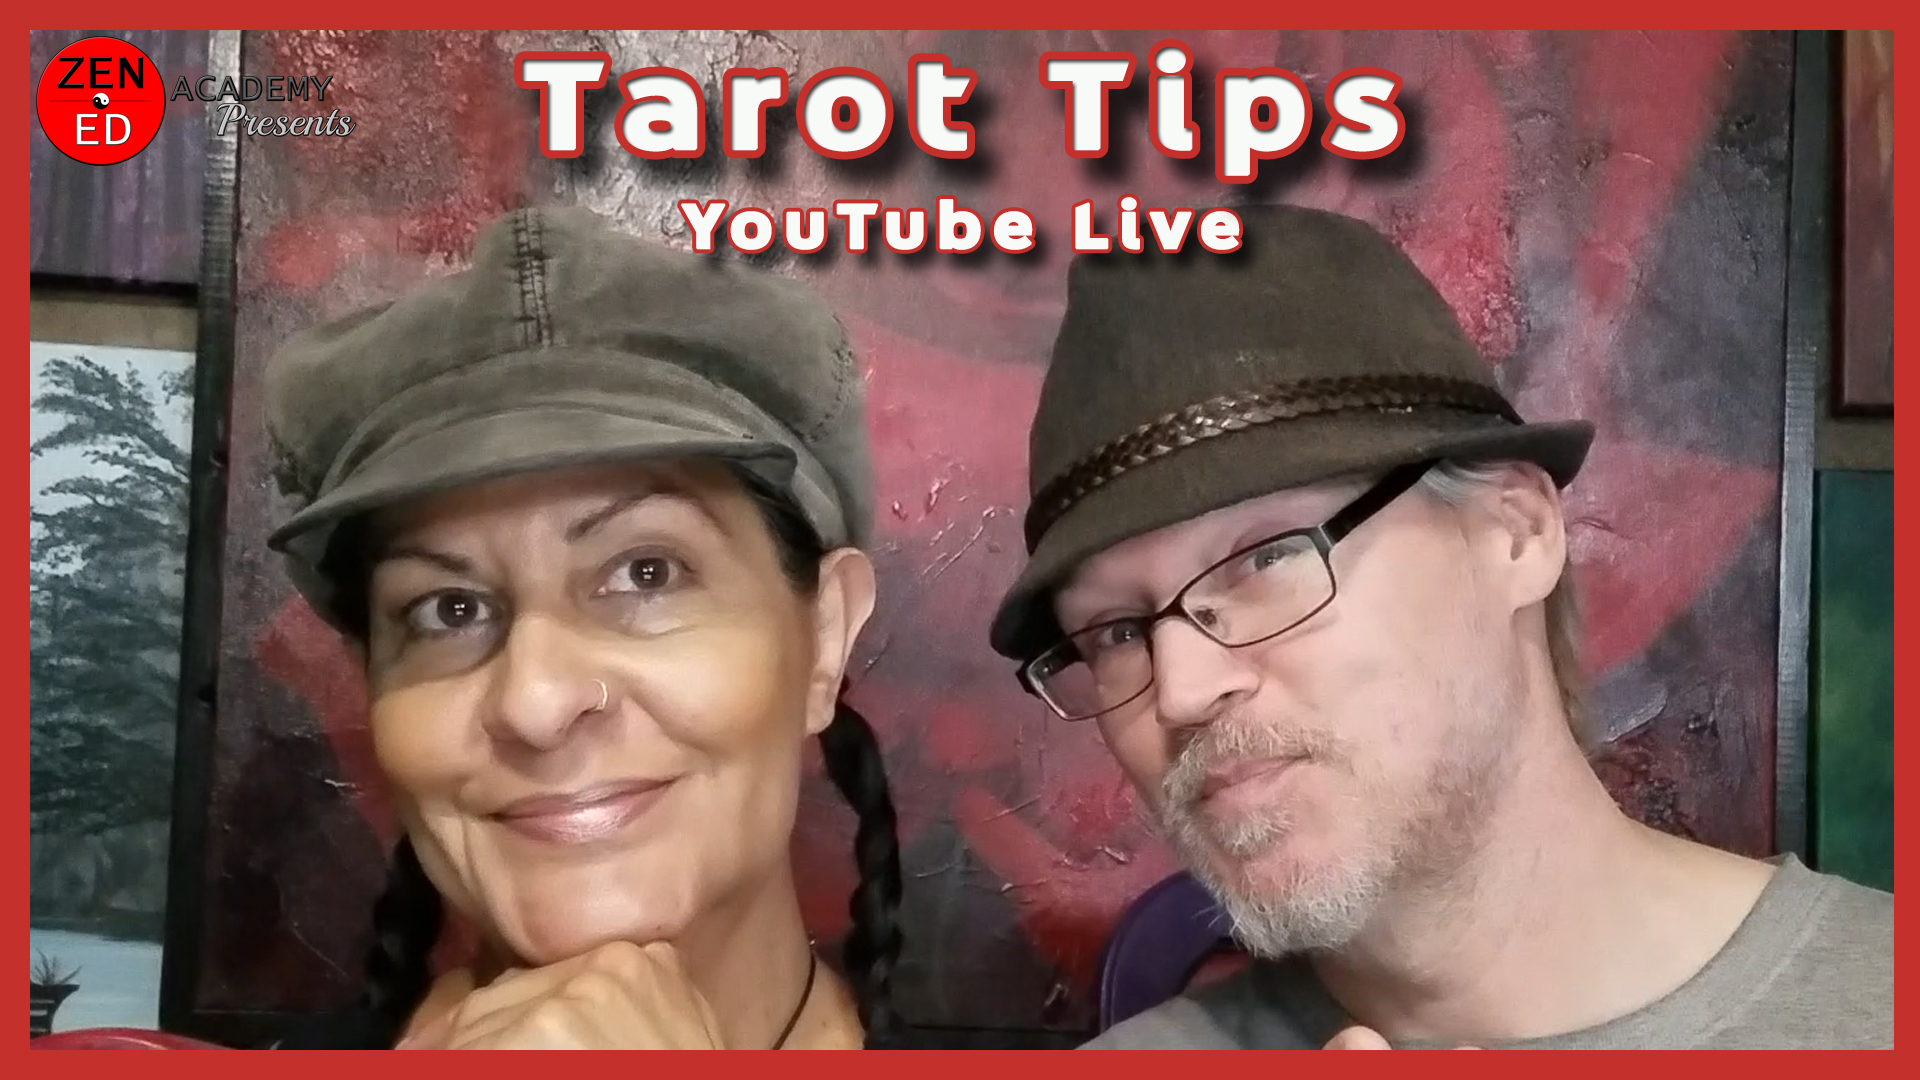 Come play THE EMOJI GAME & Win a FREE Tarot Card Pull LIVE! Free Tarot Tips